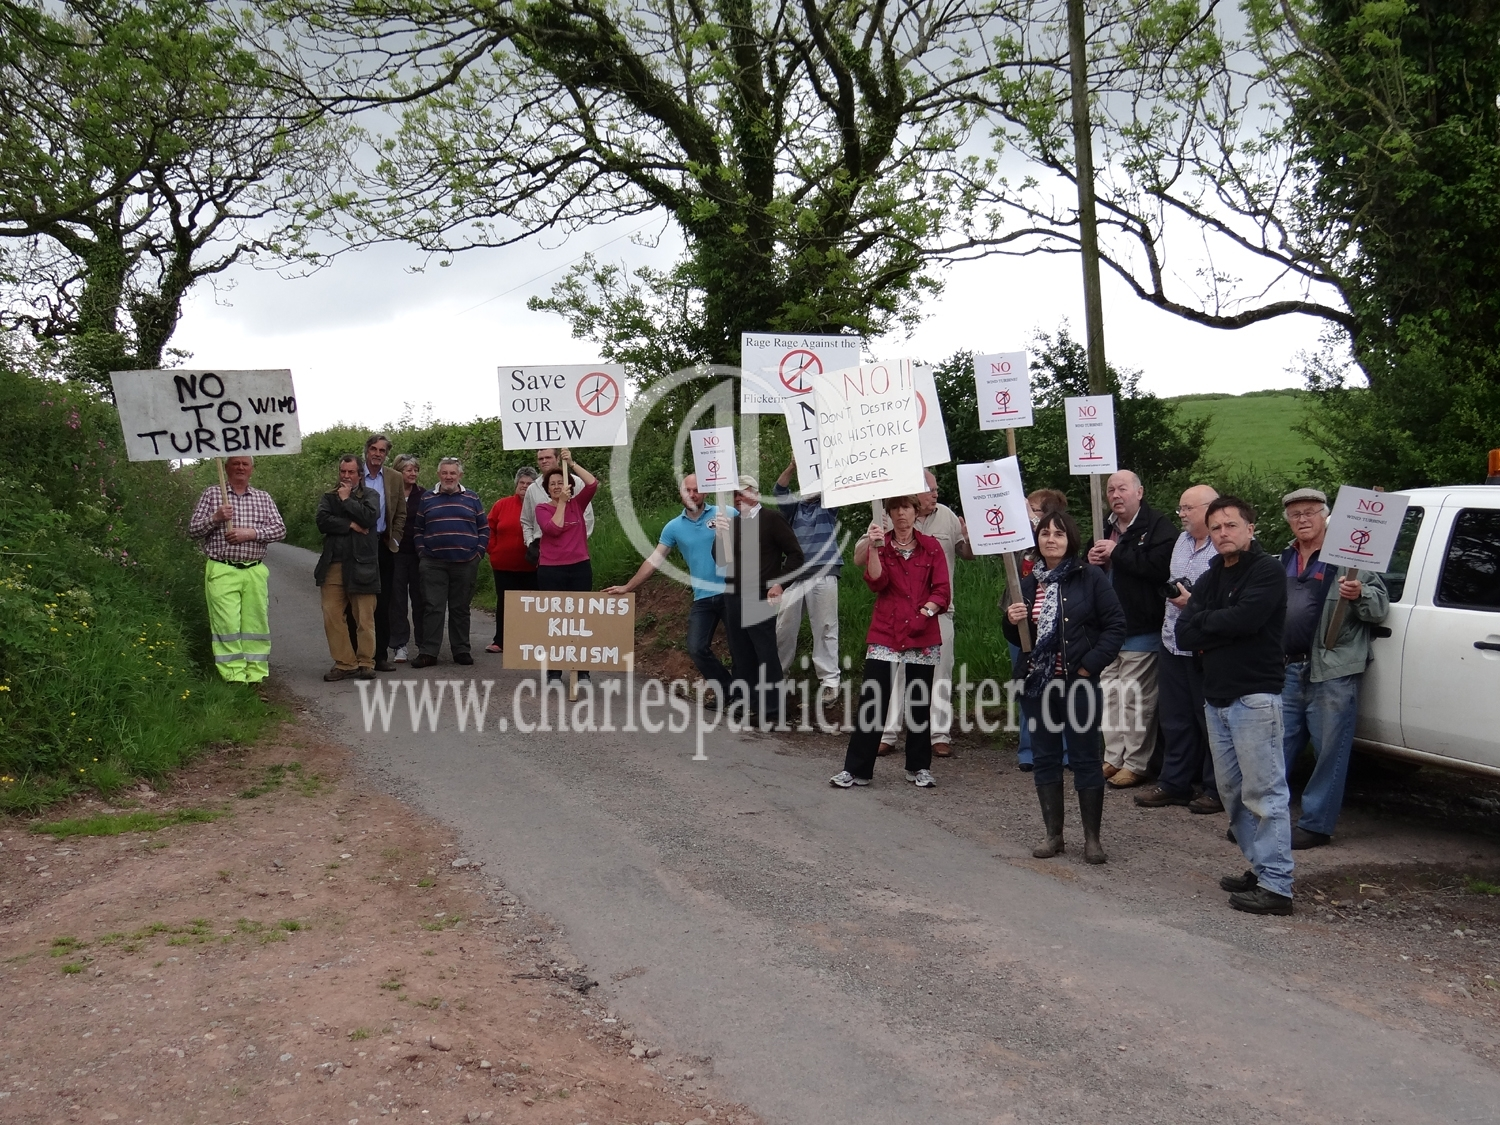 Locals protest about the plans for a wind turbine in this idyllic landscape